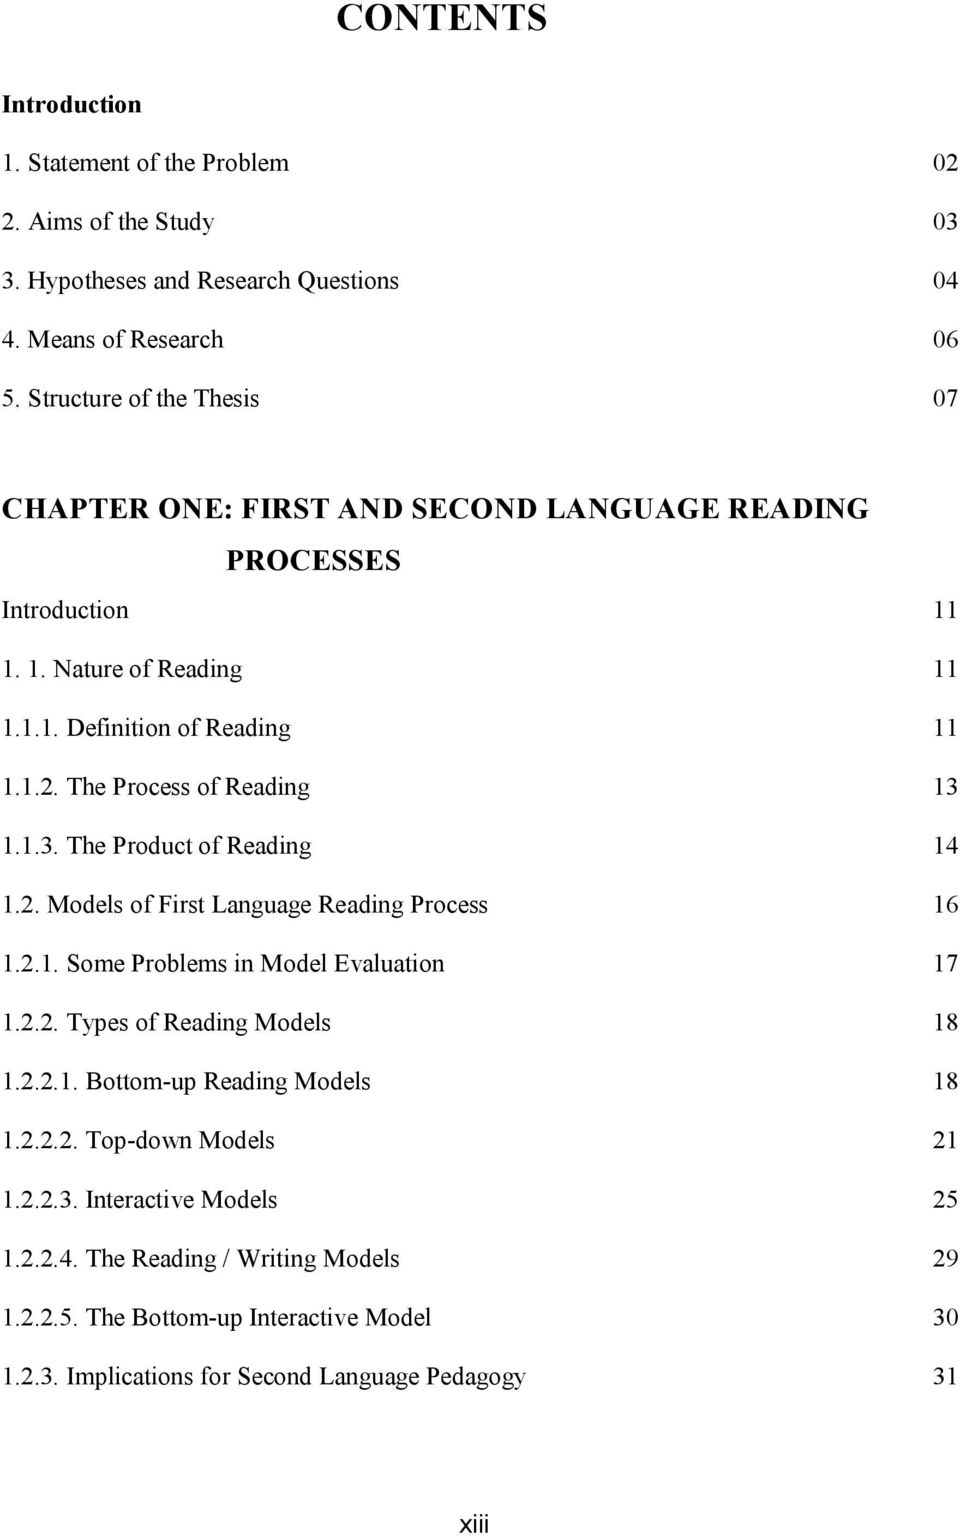 what is the definition of reading